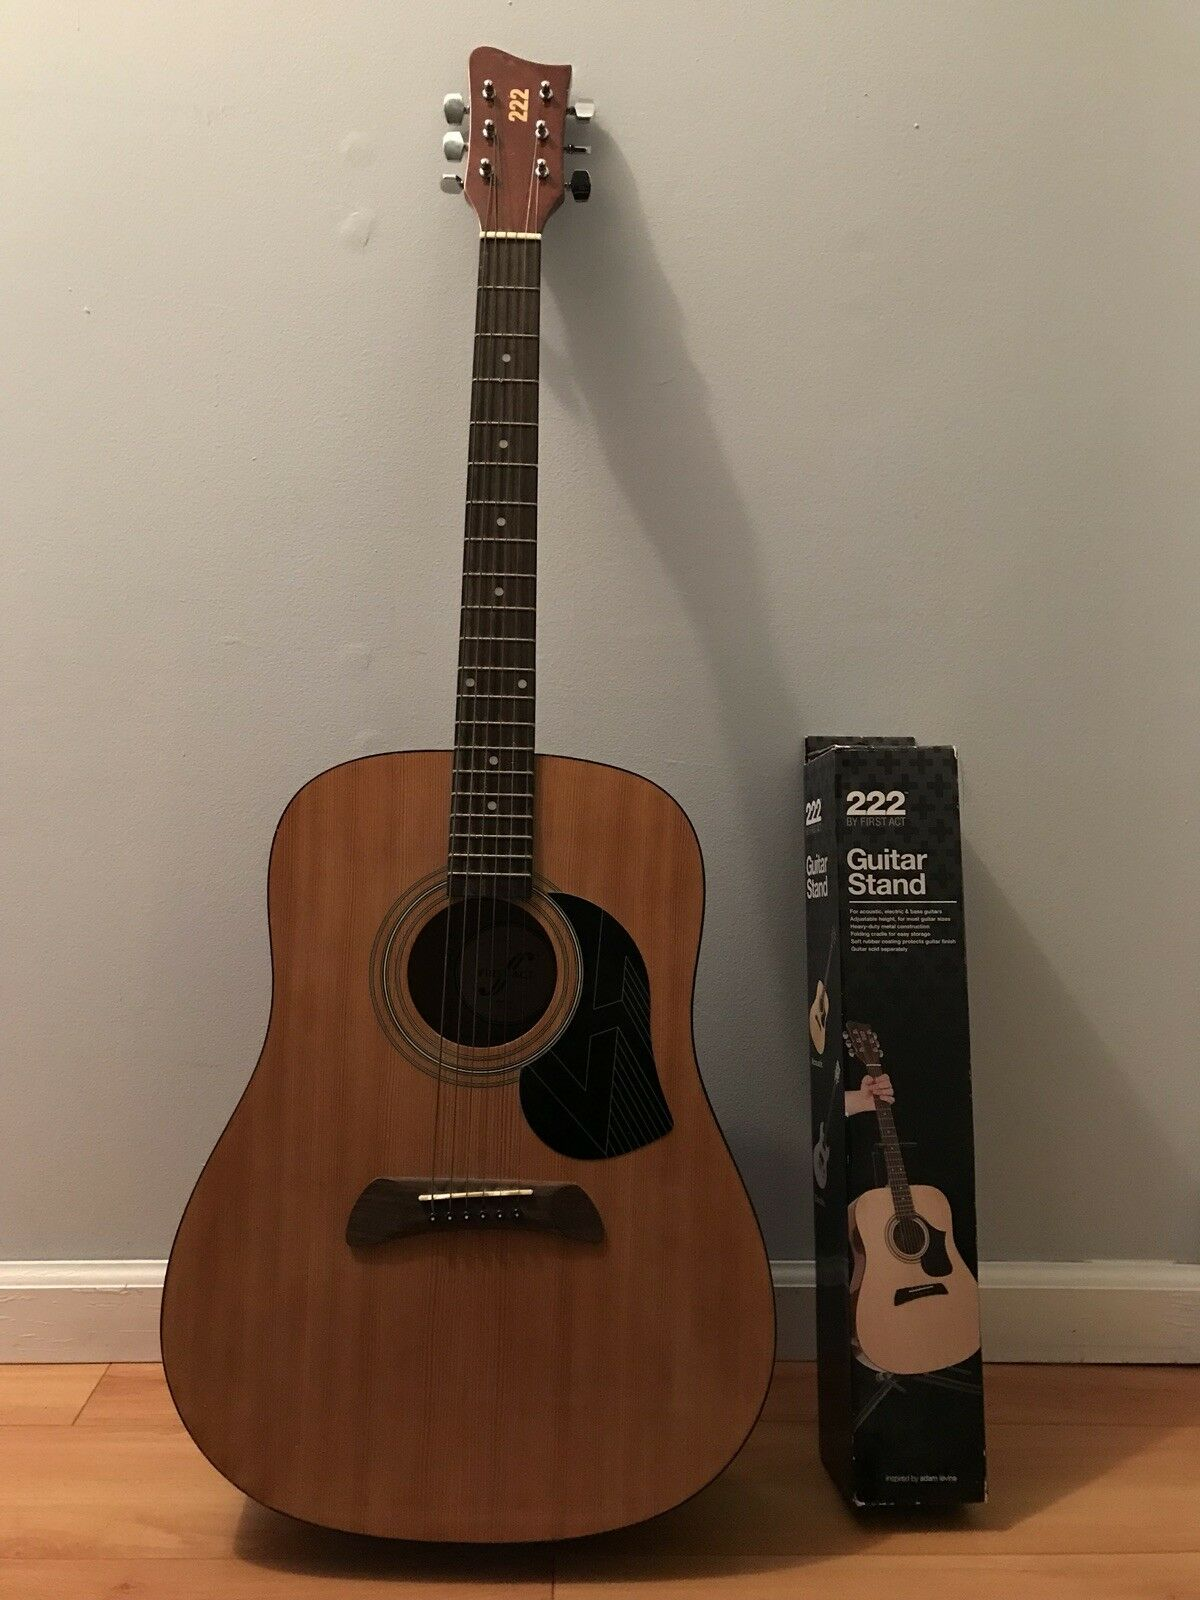 Acoustic guitar 222 by first act, includes stand.